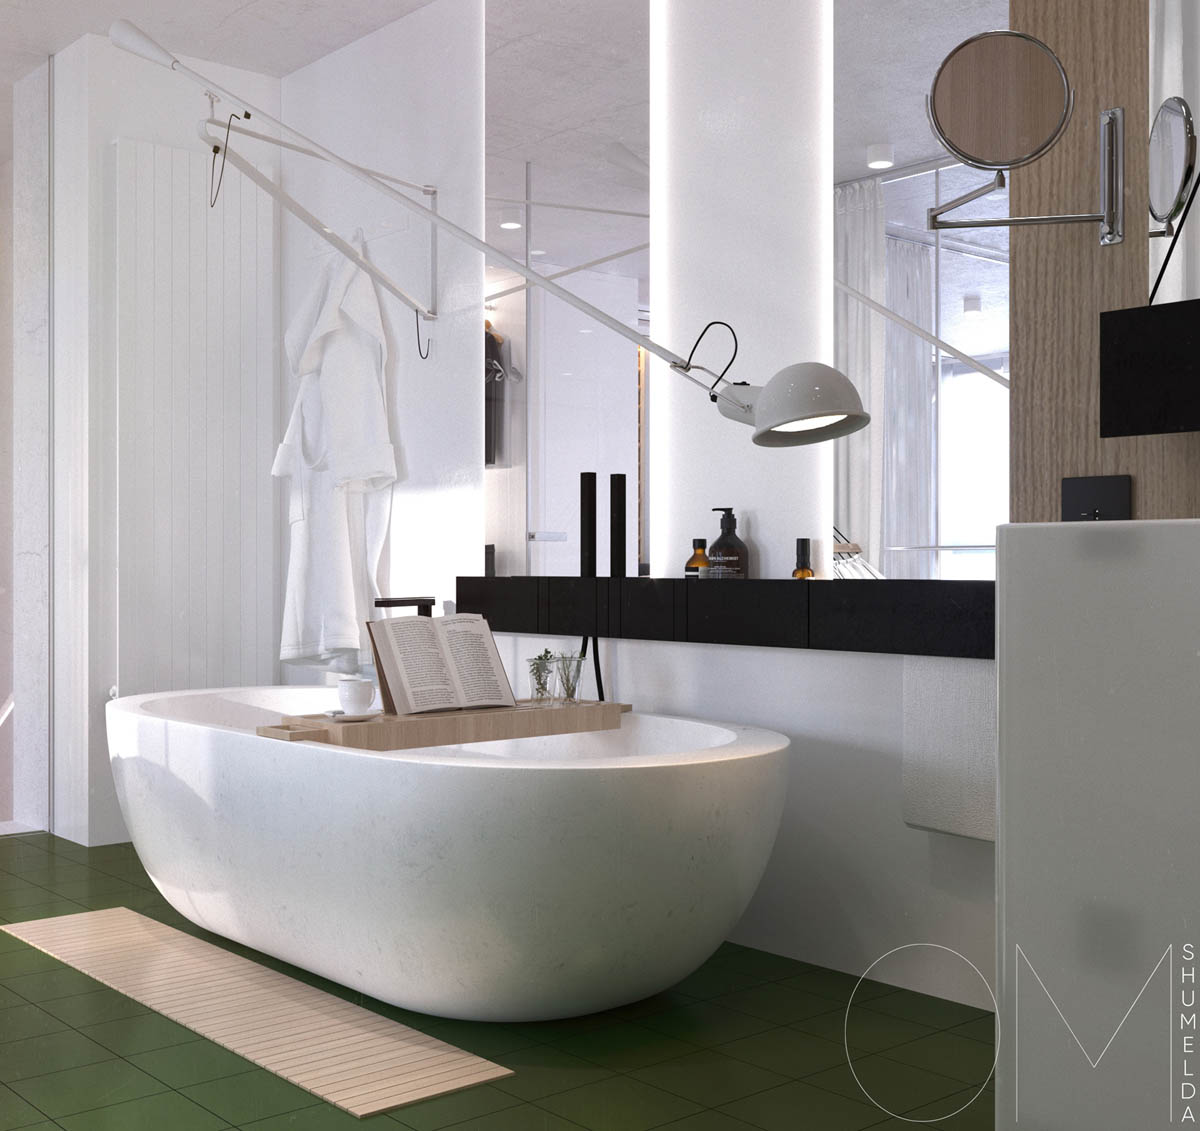 Deep White Tub - 4 chic homes that utilize lofted spaces